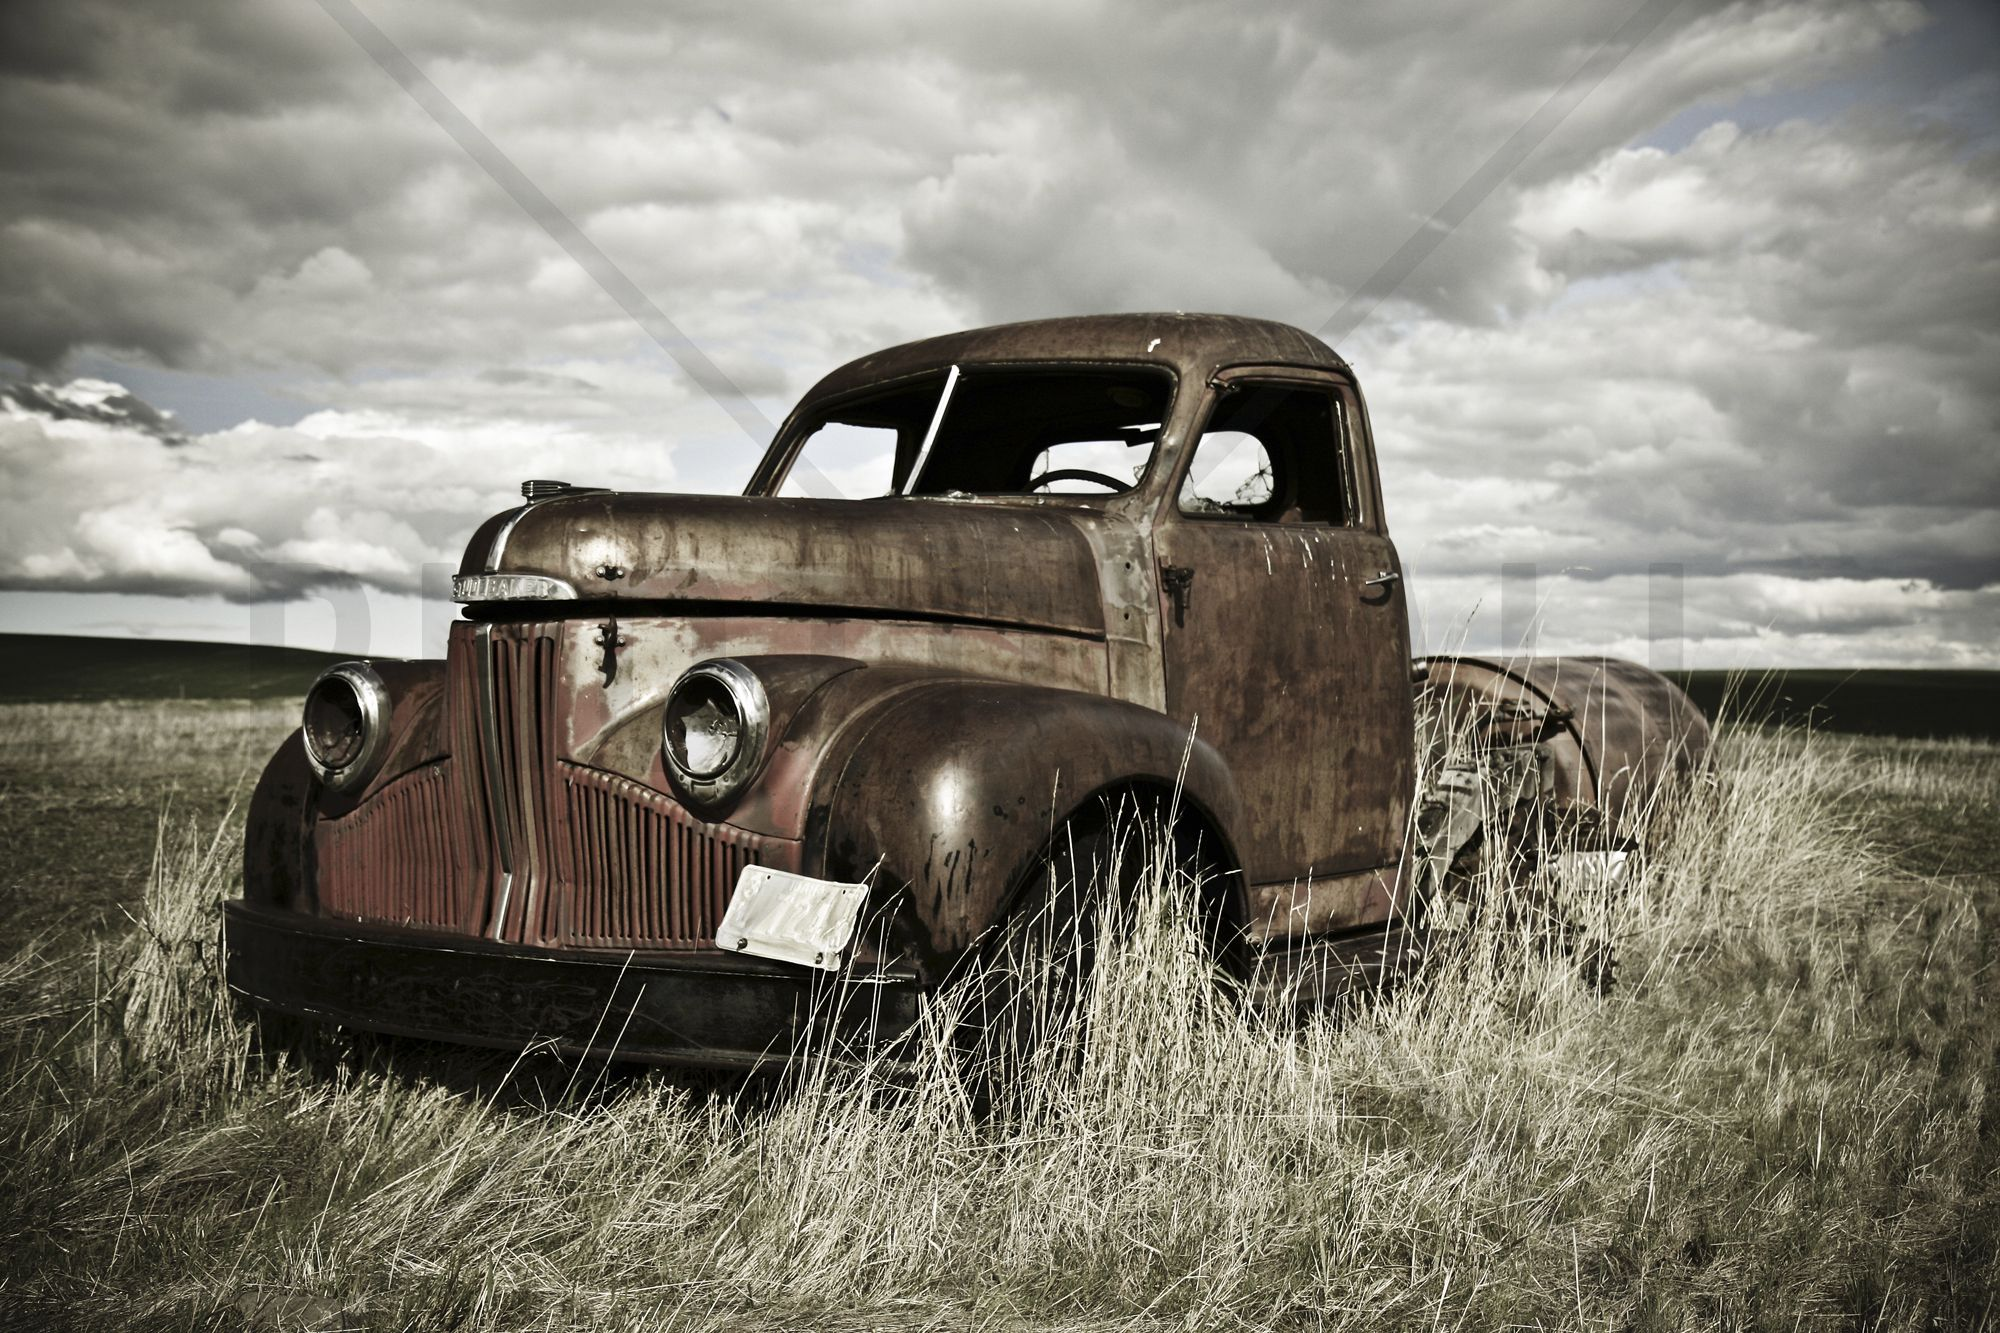 30 sqm love this old truck out in the field wall old truck out in the field wall mural photo wallpaper